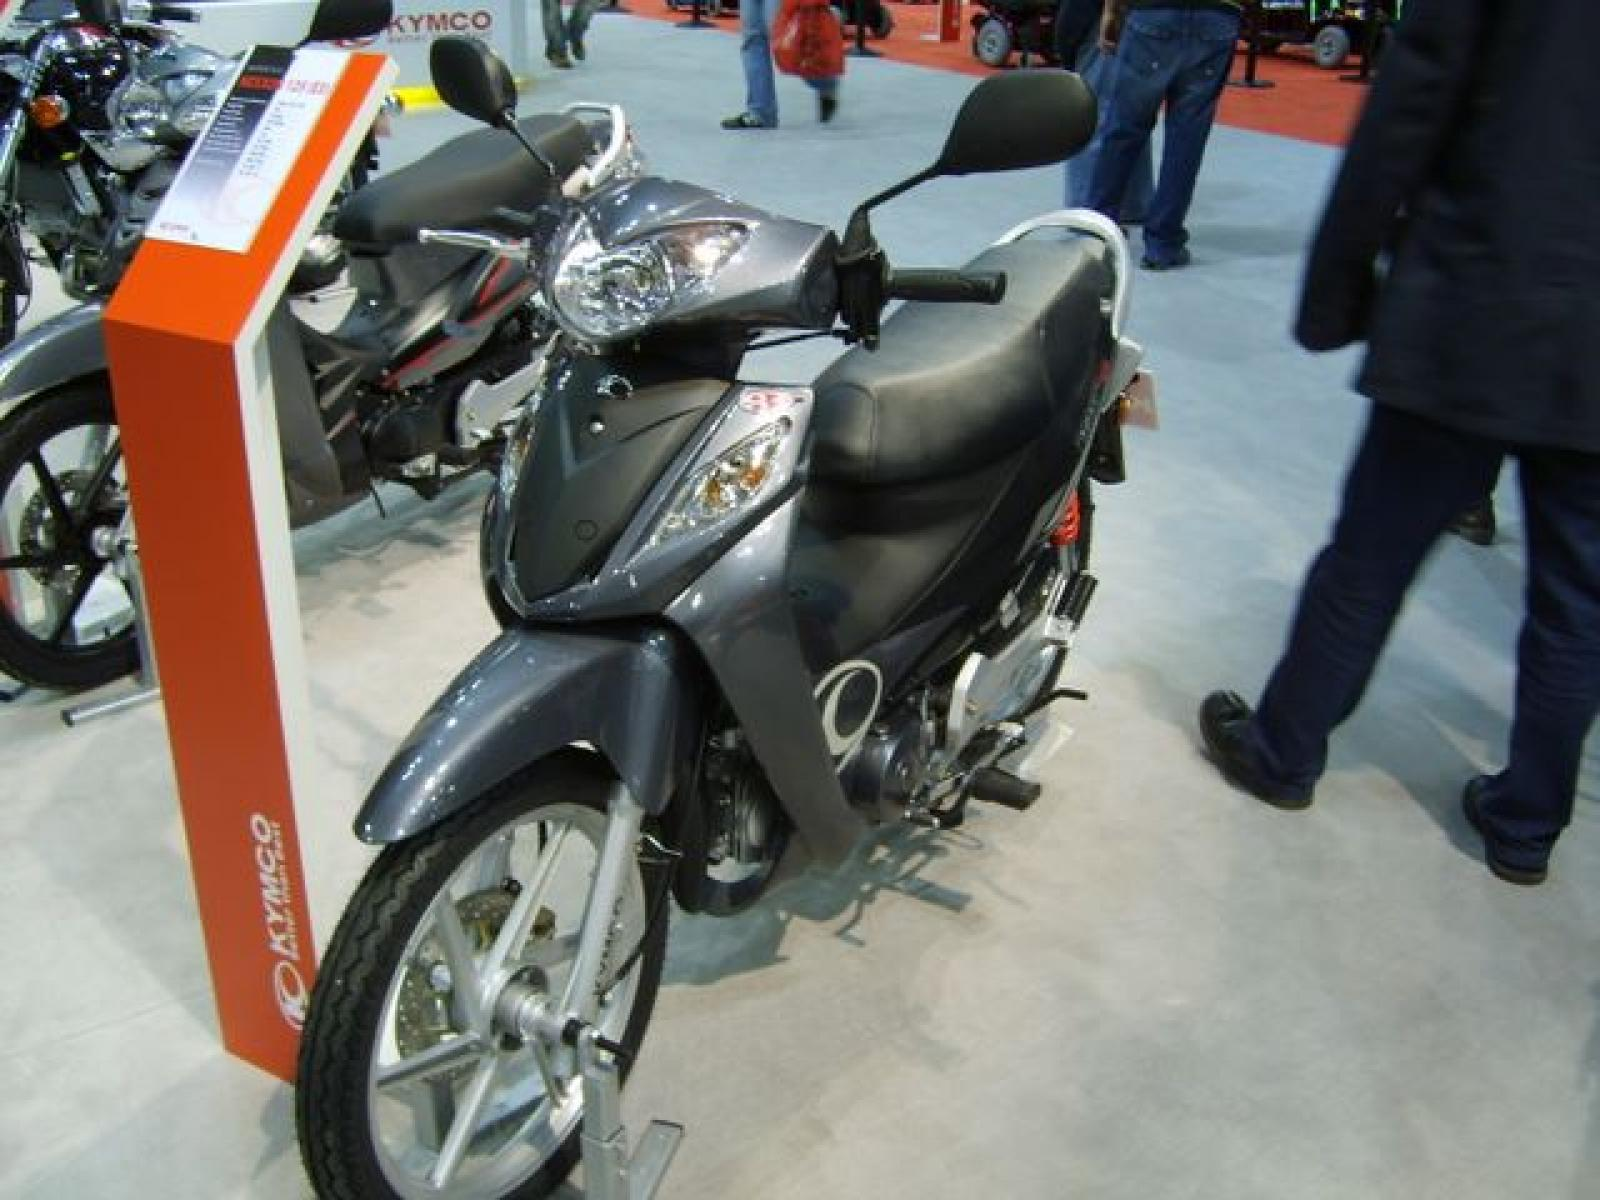 Kymco Heroism 125 2002 images #101102